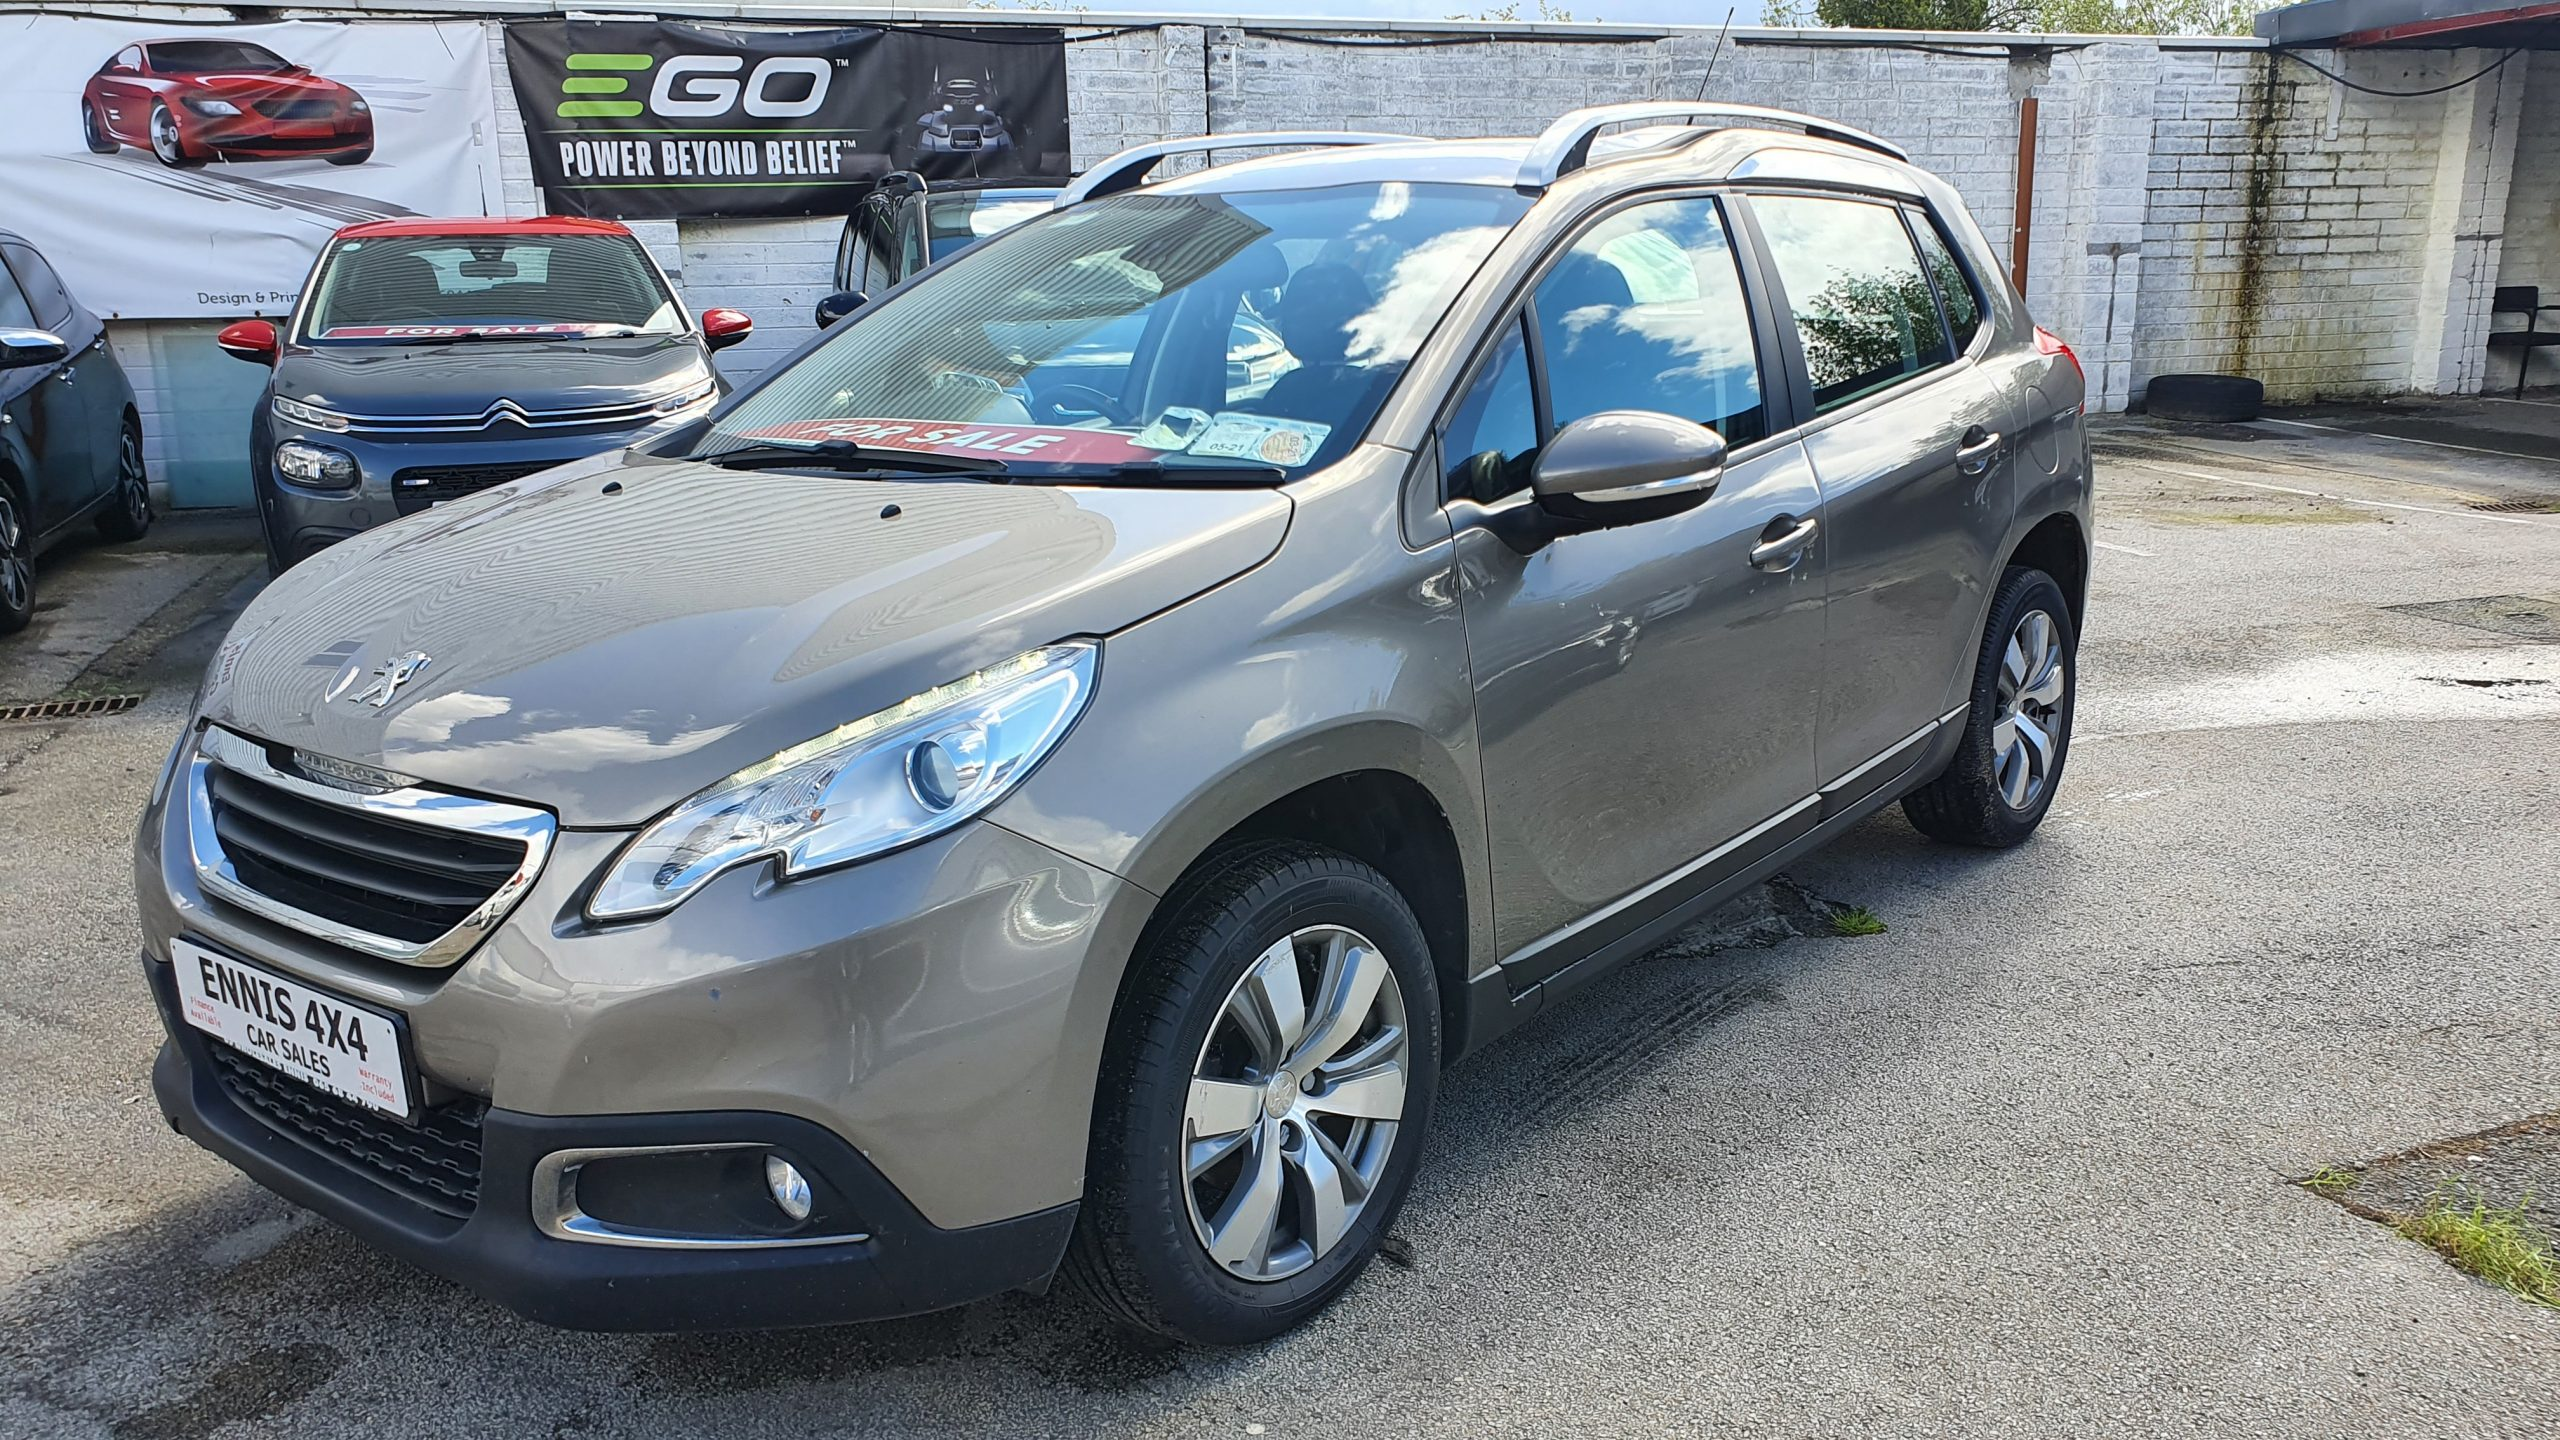 Peugeot 2008 1.6 HDI active 2016 Image